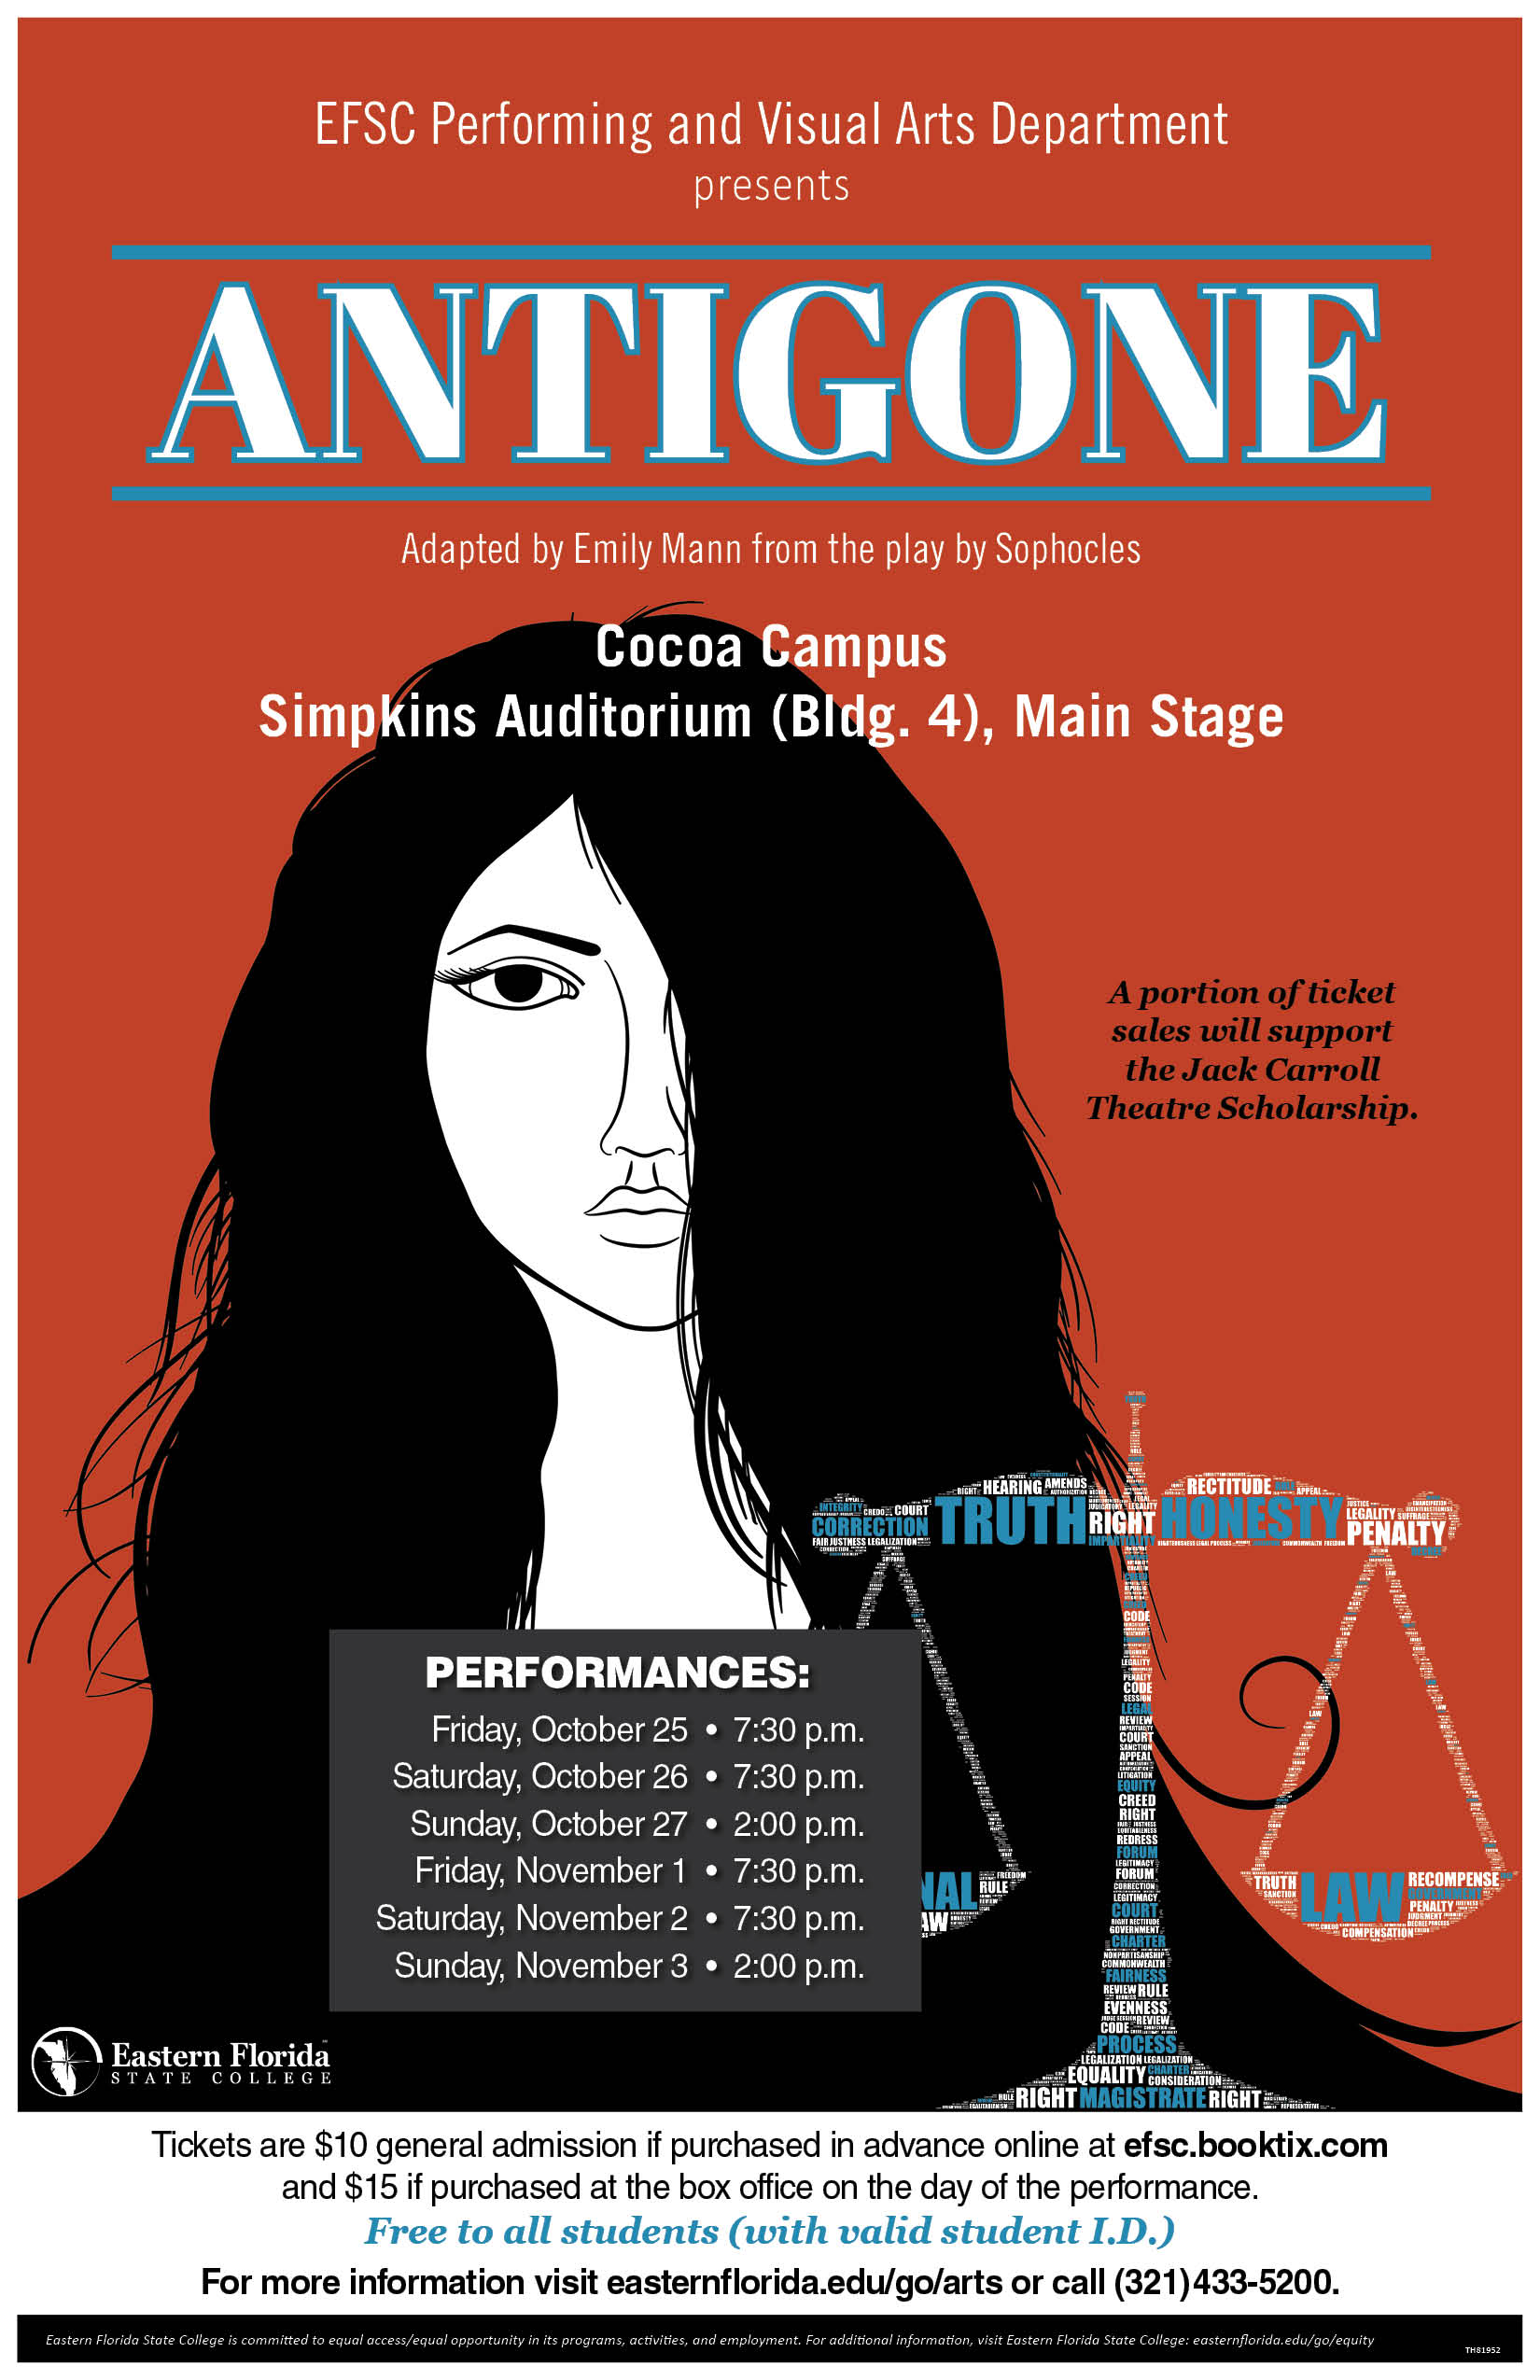 Antigone presented by EFSC Performing and Visual Arts Department